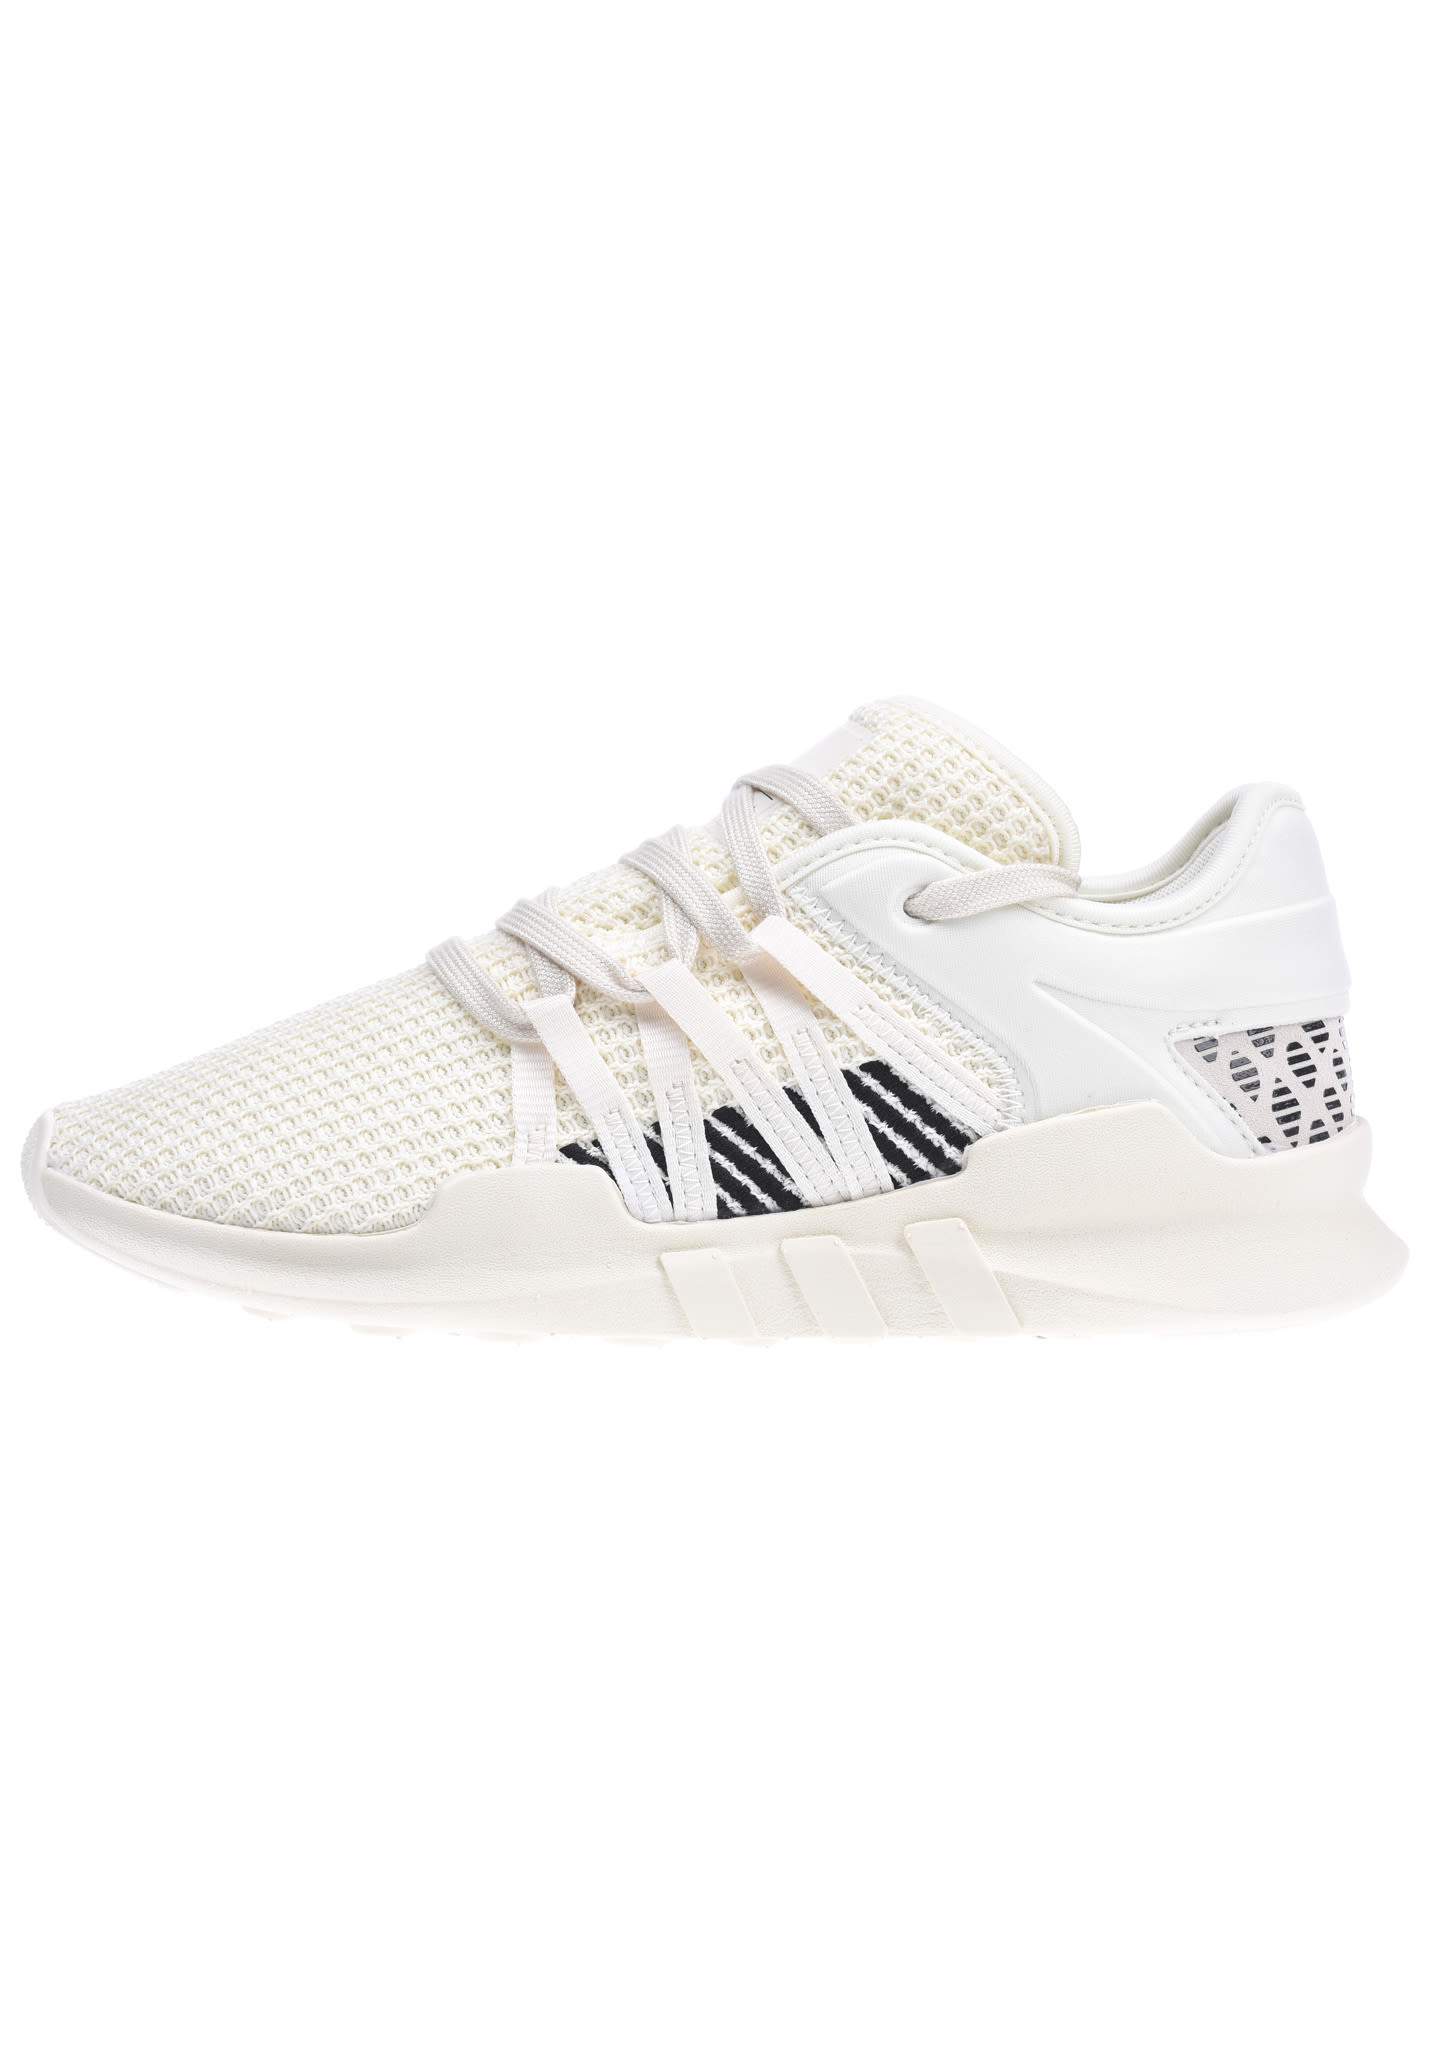 buy online 7d7fb 7e19e ADIDAS ORIGINALS Eqt Racing Adv - Sneakers for Women - White